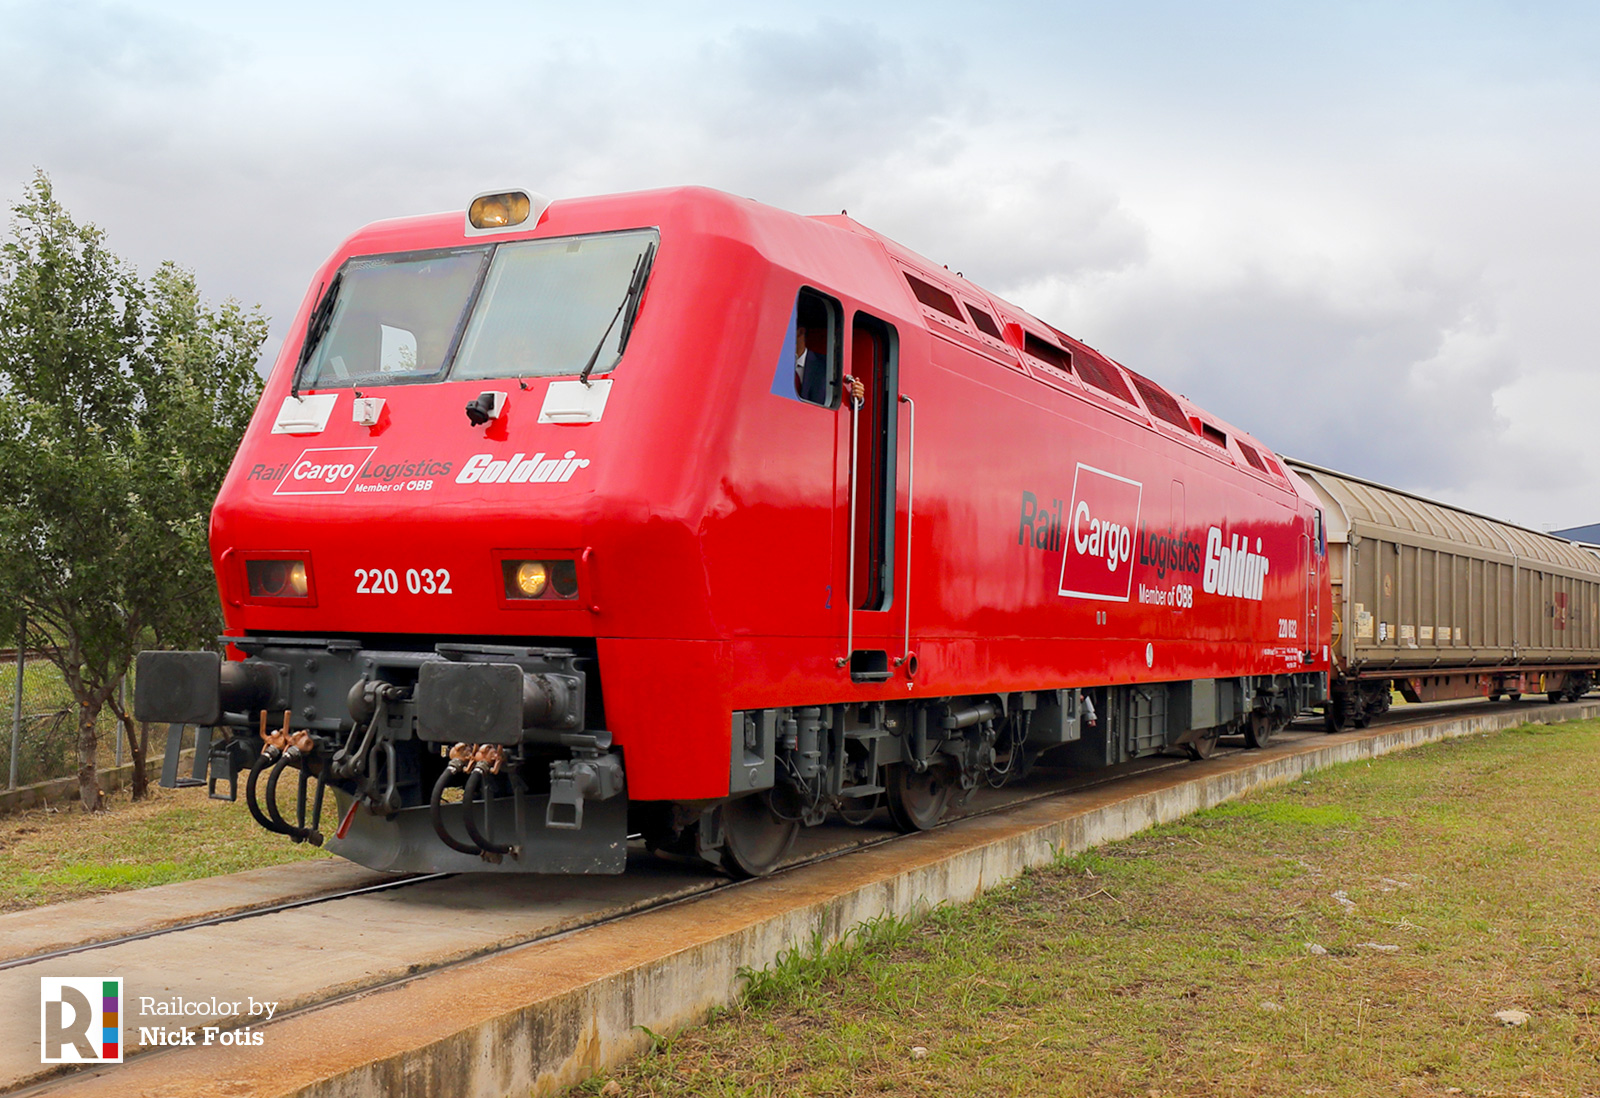 GR] RCLG: First private train in Greece scheduled for